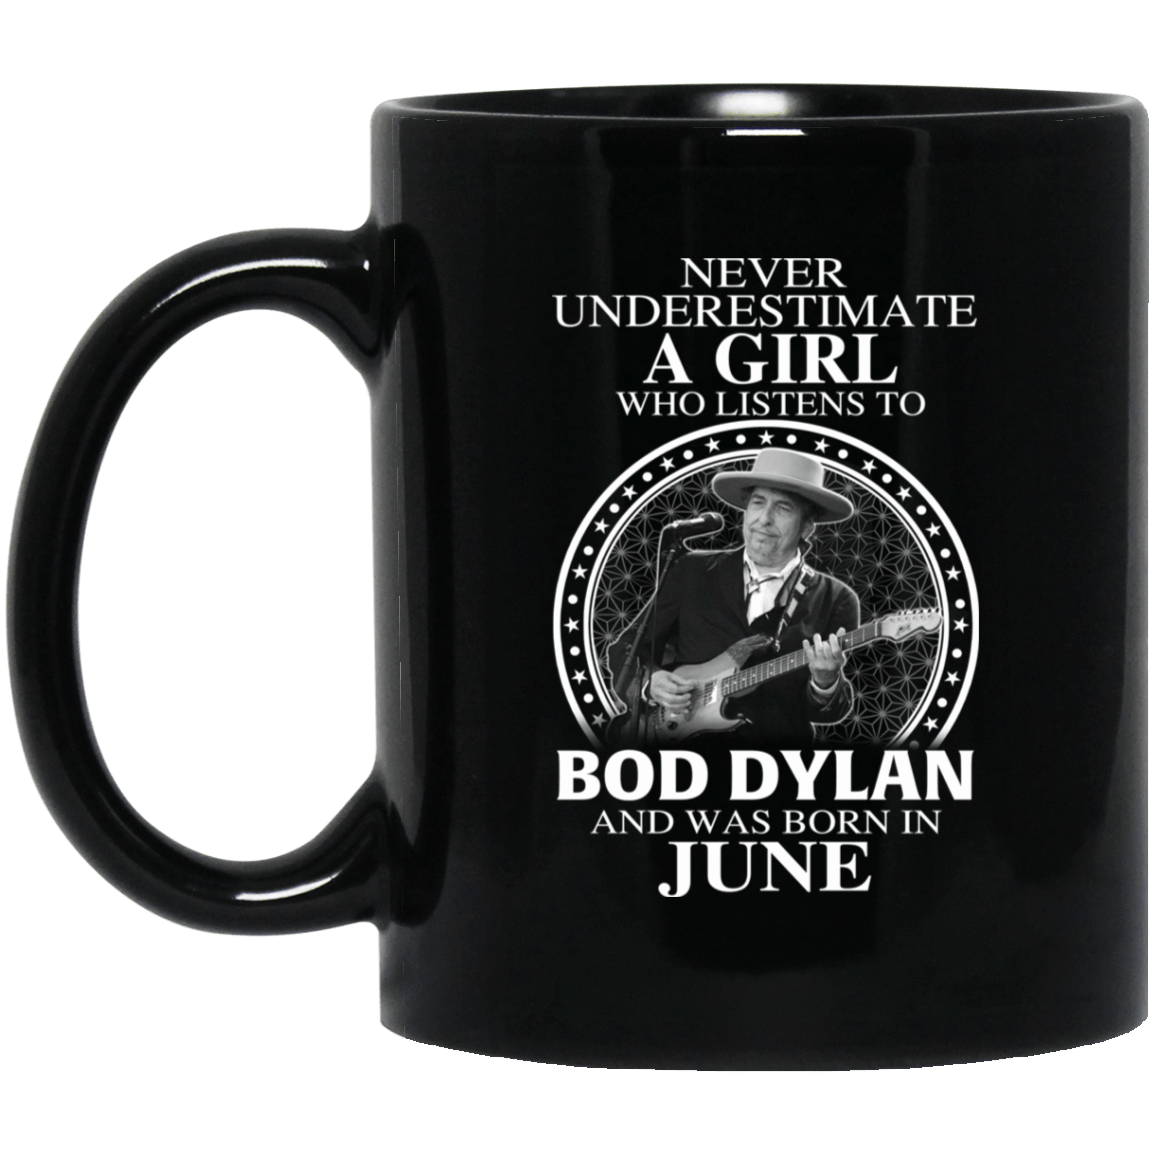 A Girl Who Listens To Bob Dylan And Was Born In June Mug 1065-10181-76154834-49307 - Tee Ript